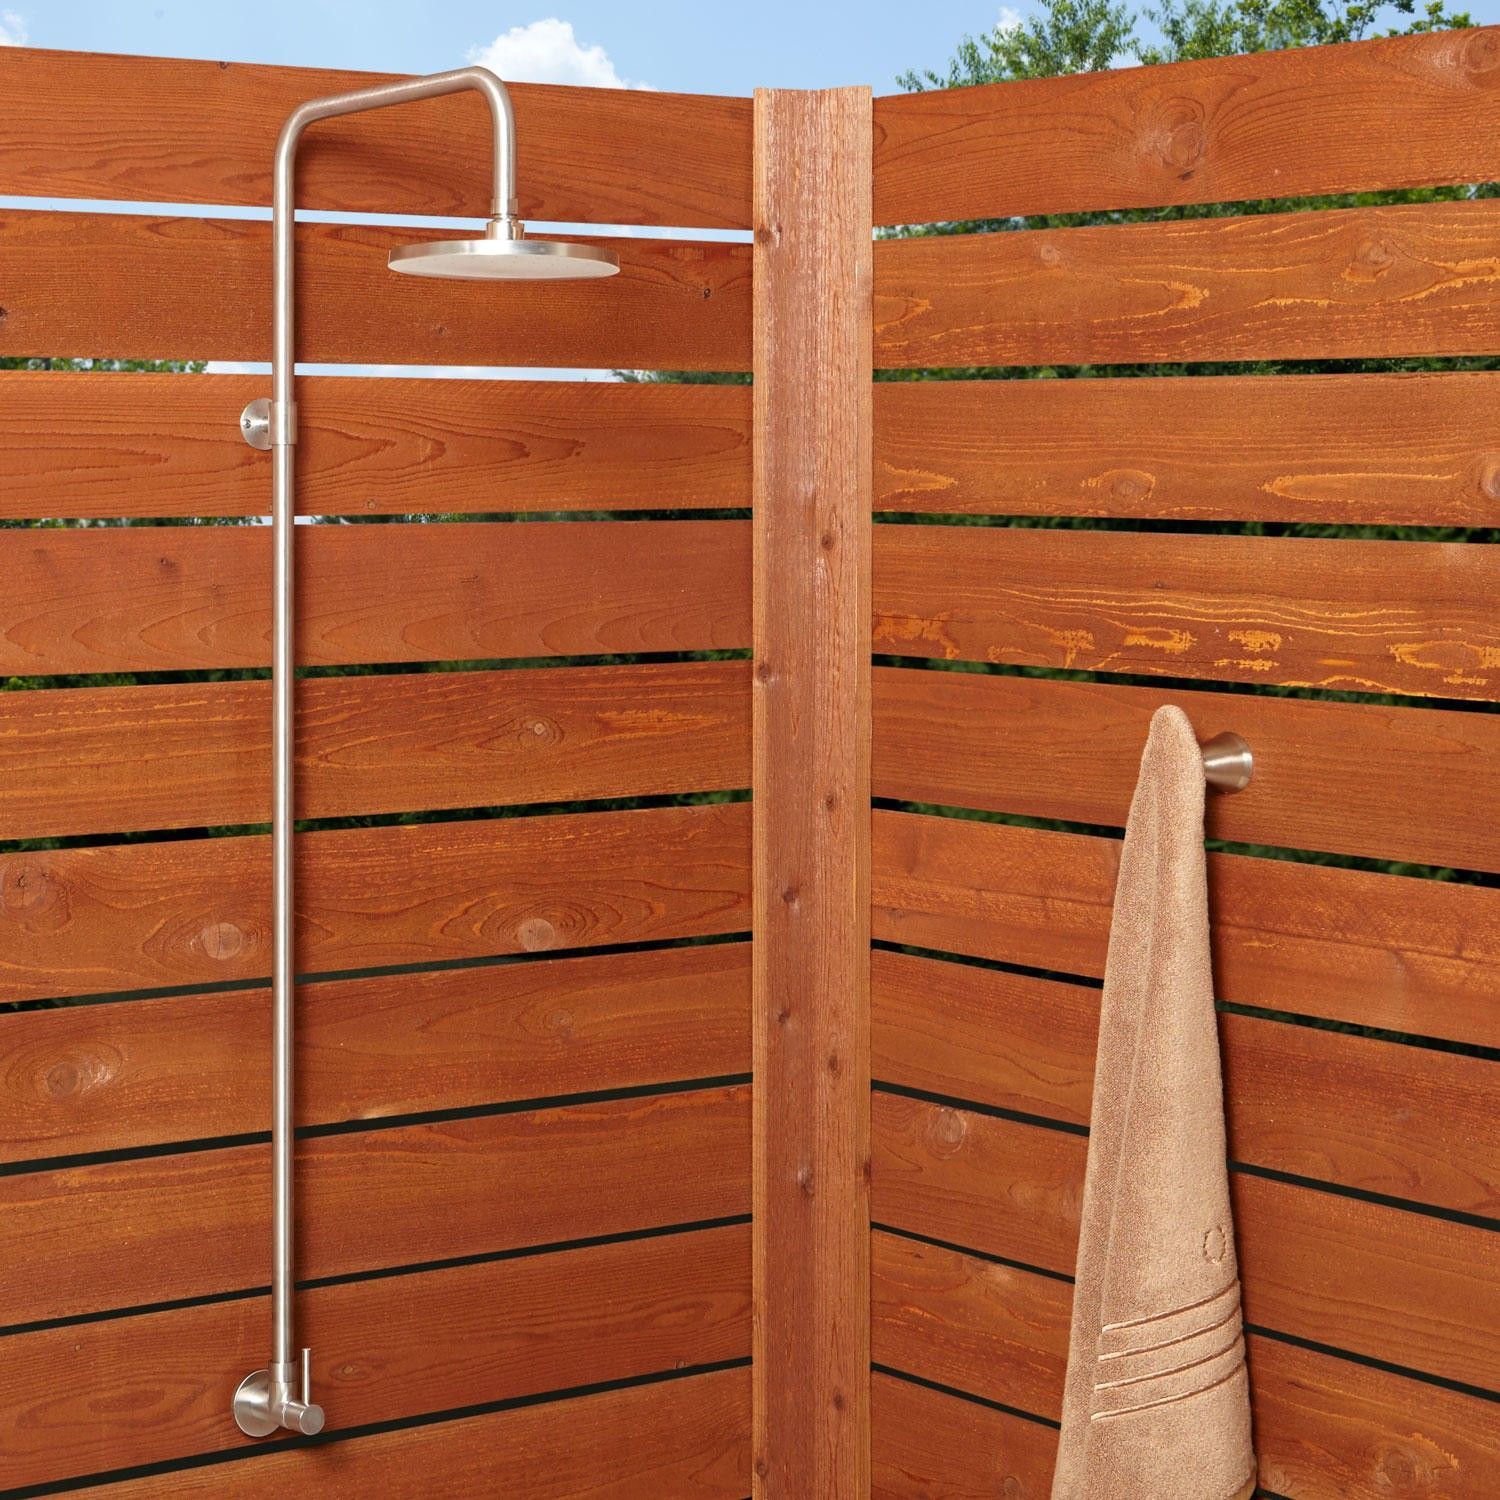 Stainless Steel Exposed Outdoor Shower From Signature Hardware